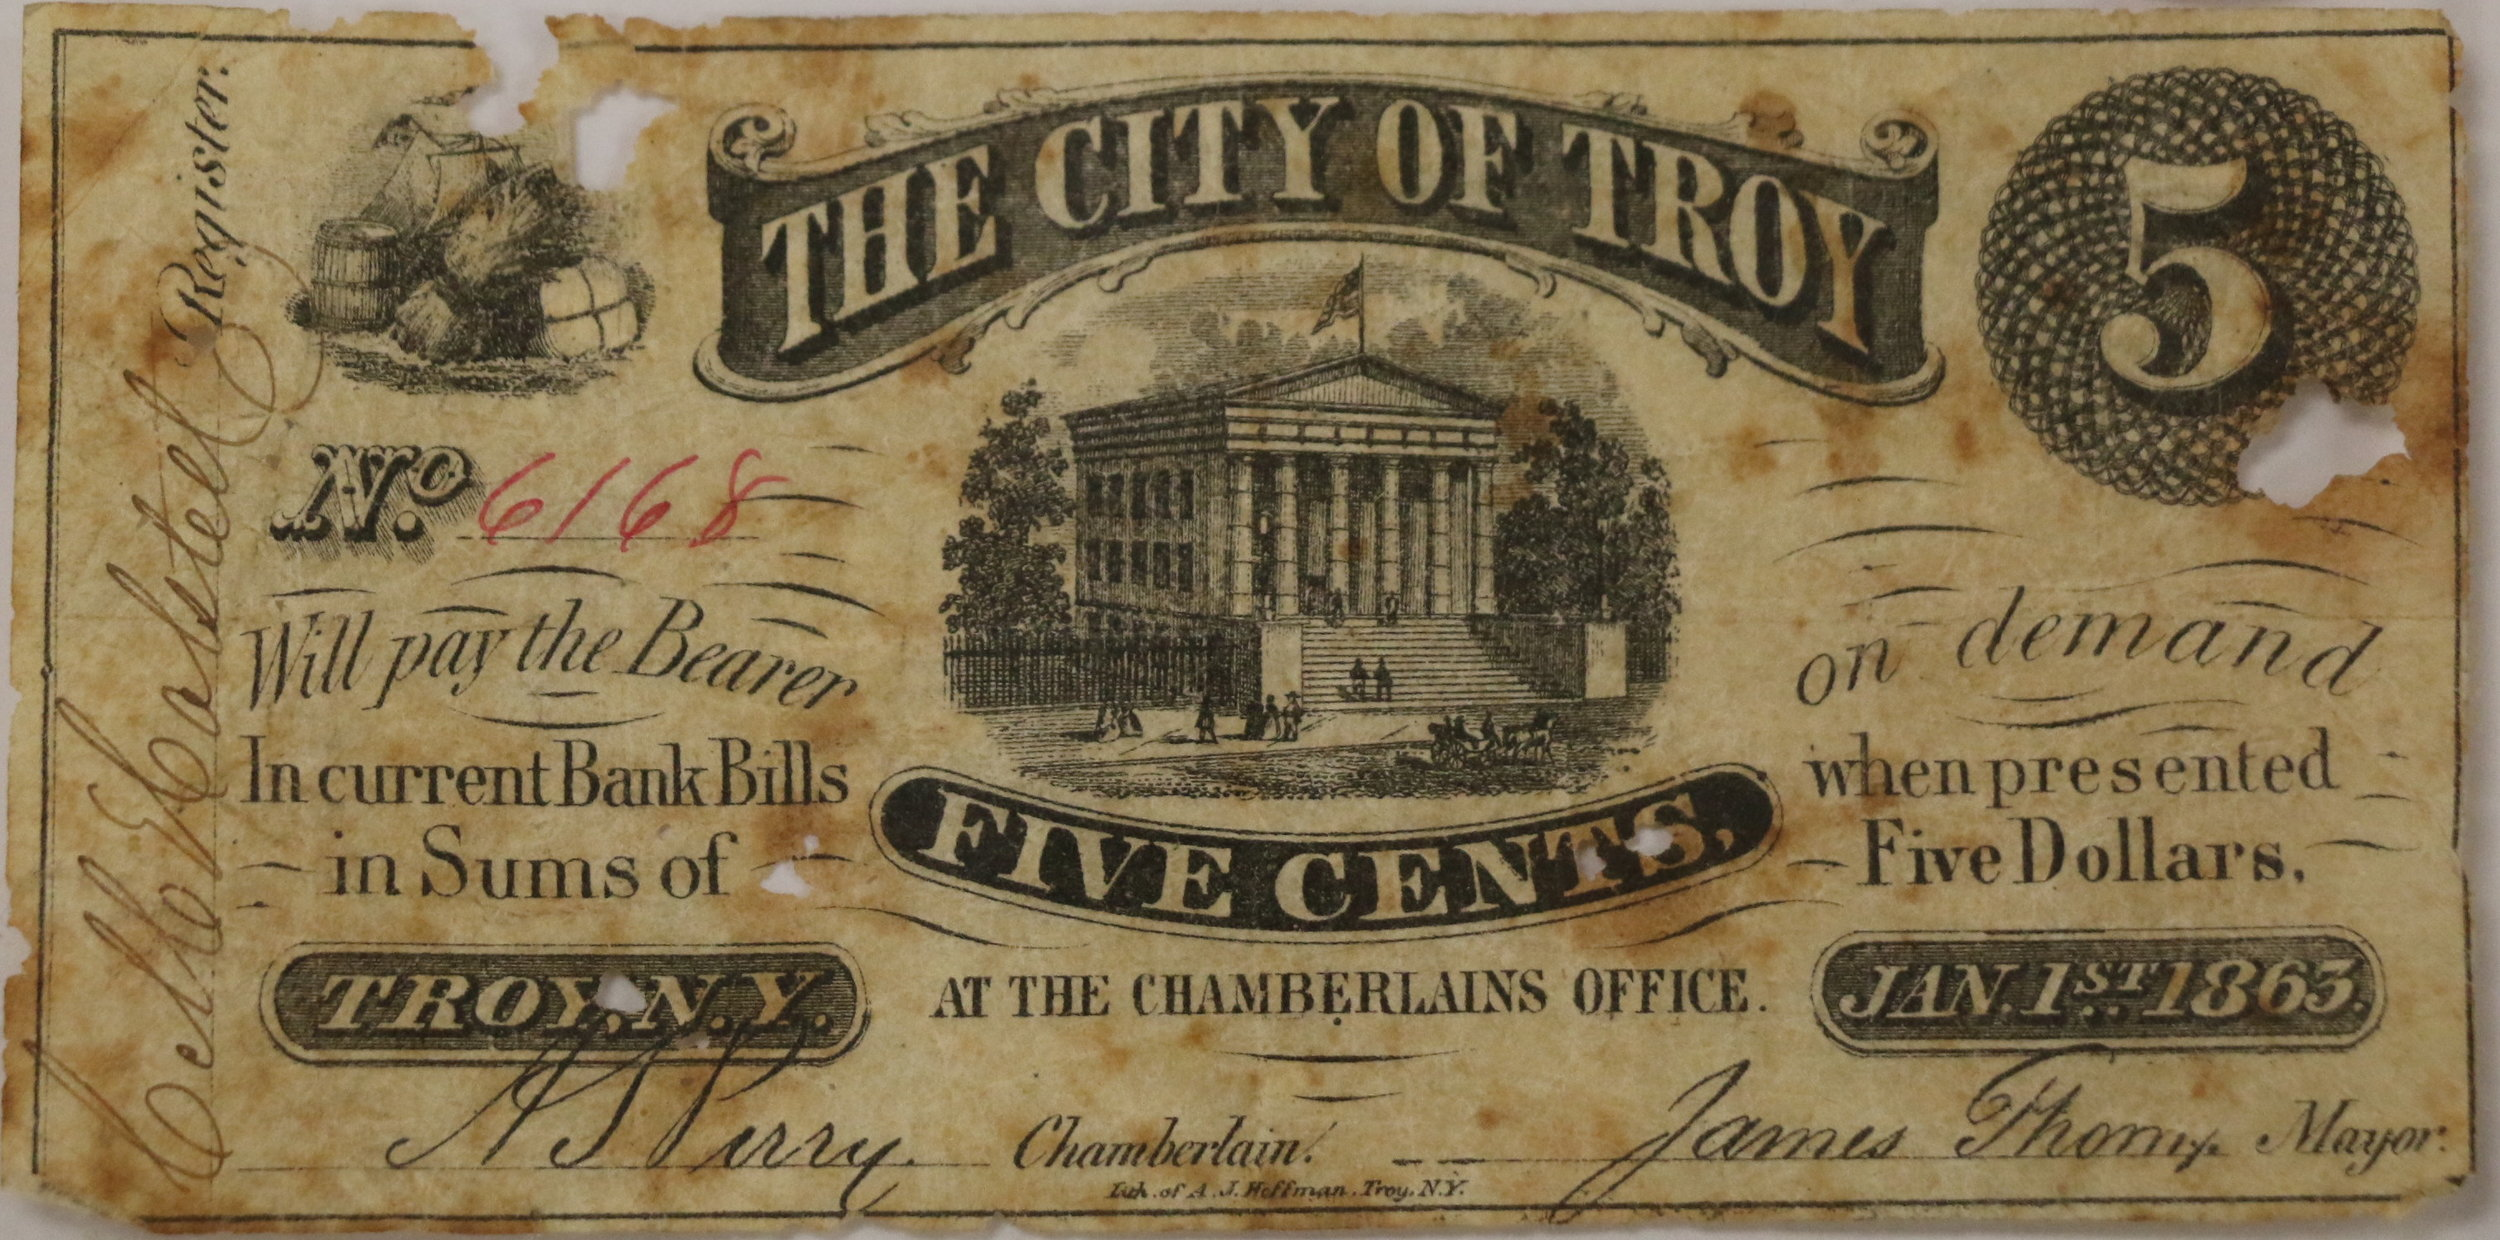 Five cent fractional currency issued by the City of Troy.